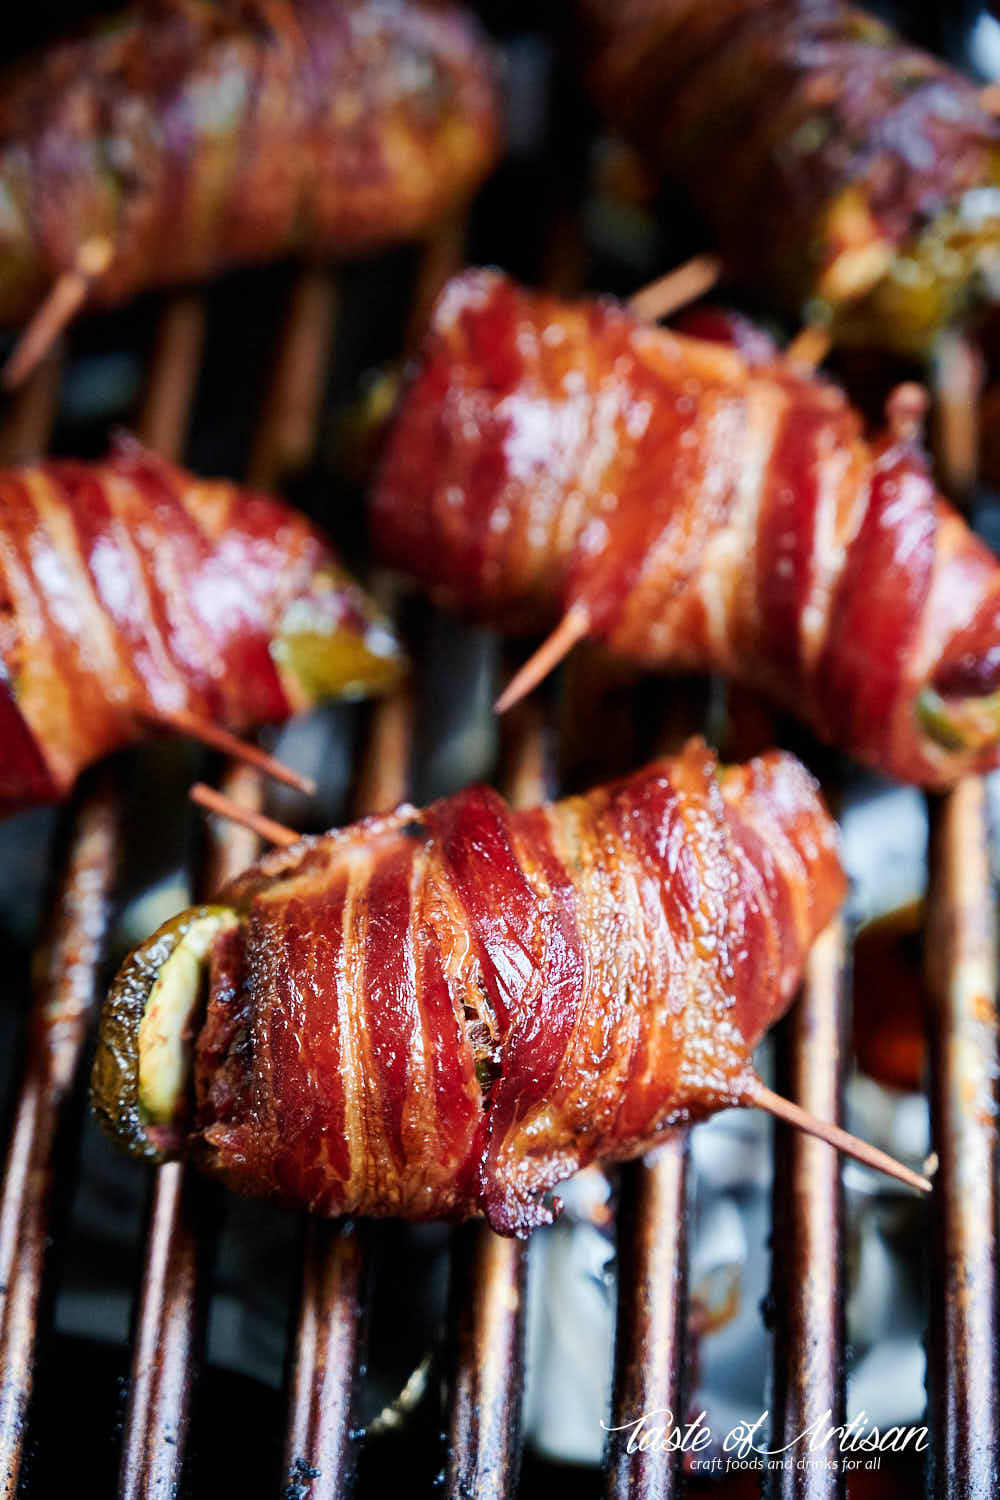 Bacon wrapped jalapeno peppers stuffed with brisket on a grate of a smoker.